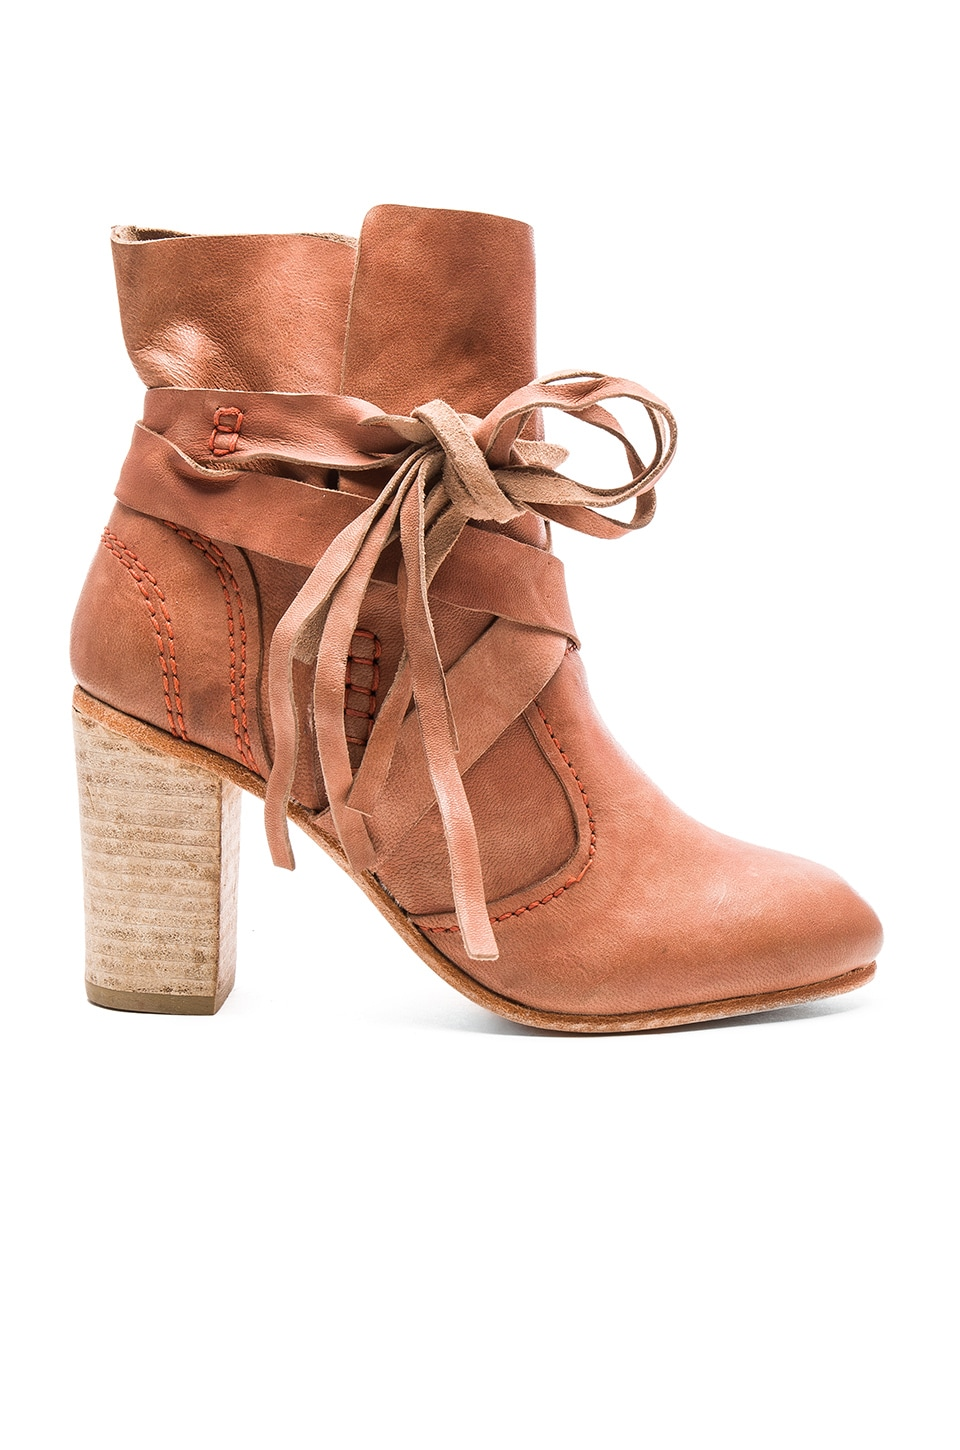 Free People Seven Wonders Booties in Brick